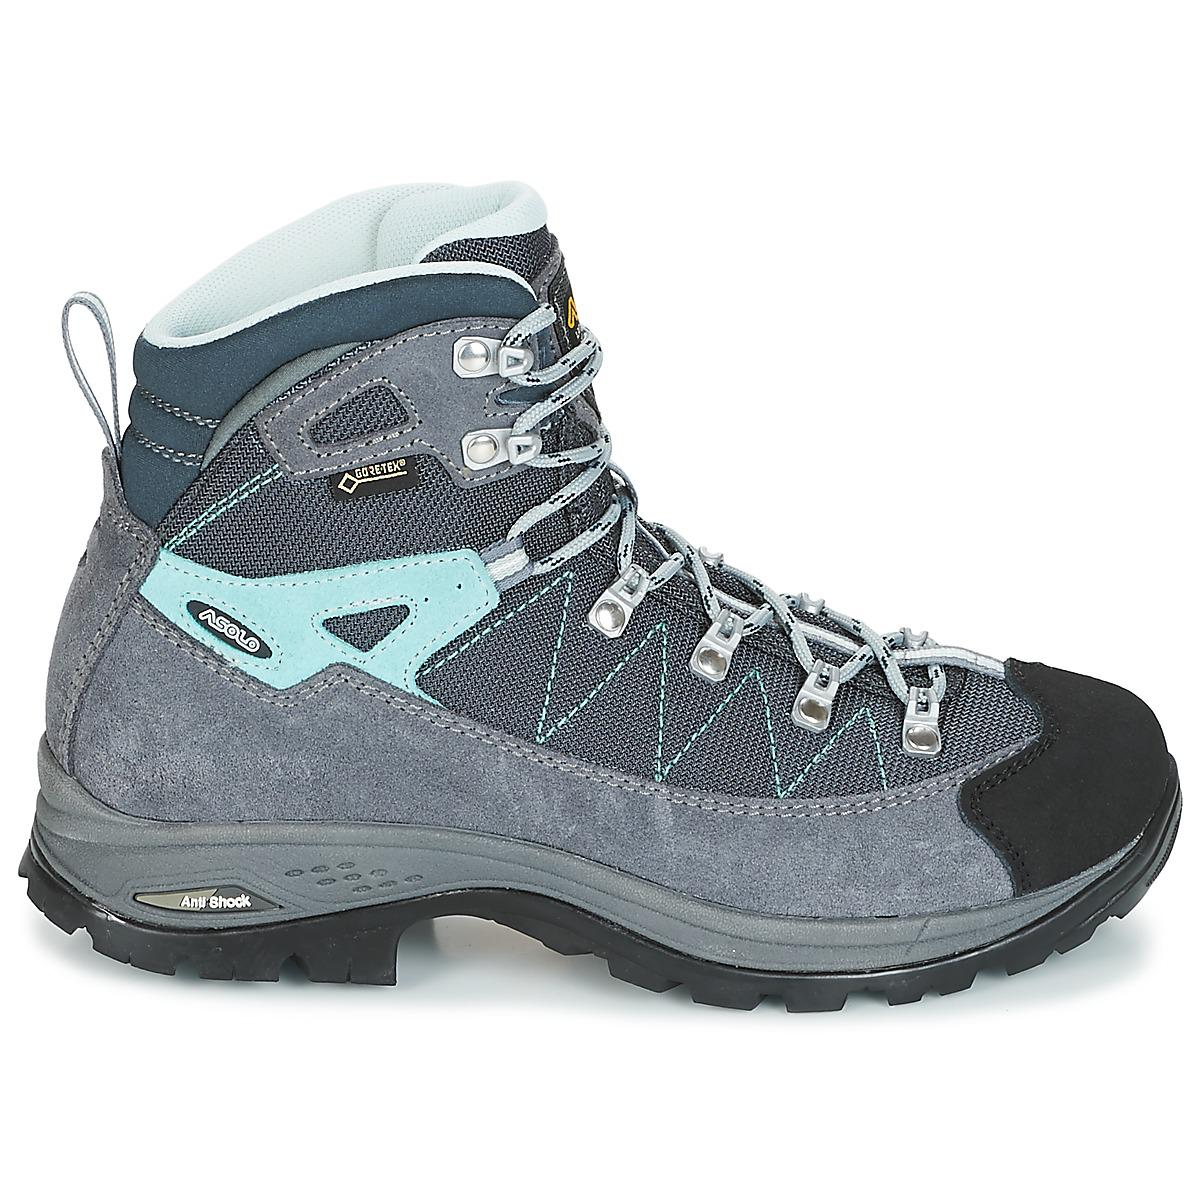 Asolo FINDER GV ML women's Walking Boots in Explore For Sale Sale Extremely Inexpensive Cheap Online Great Deals Sale Online Limit Discount R666woChe